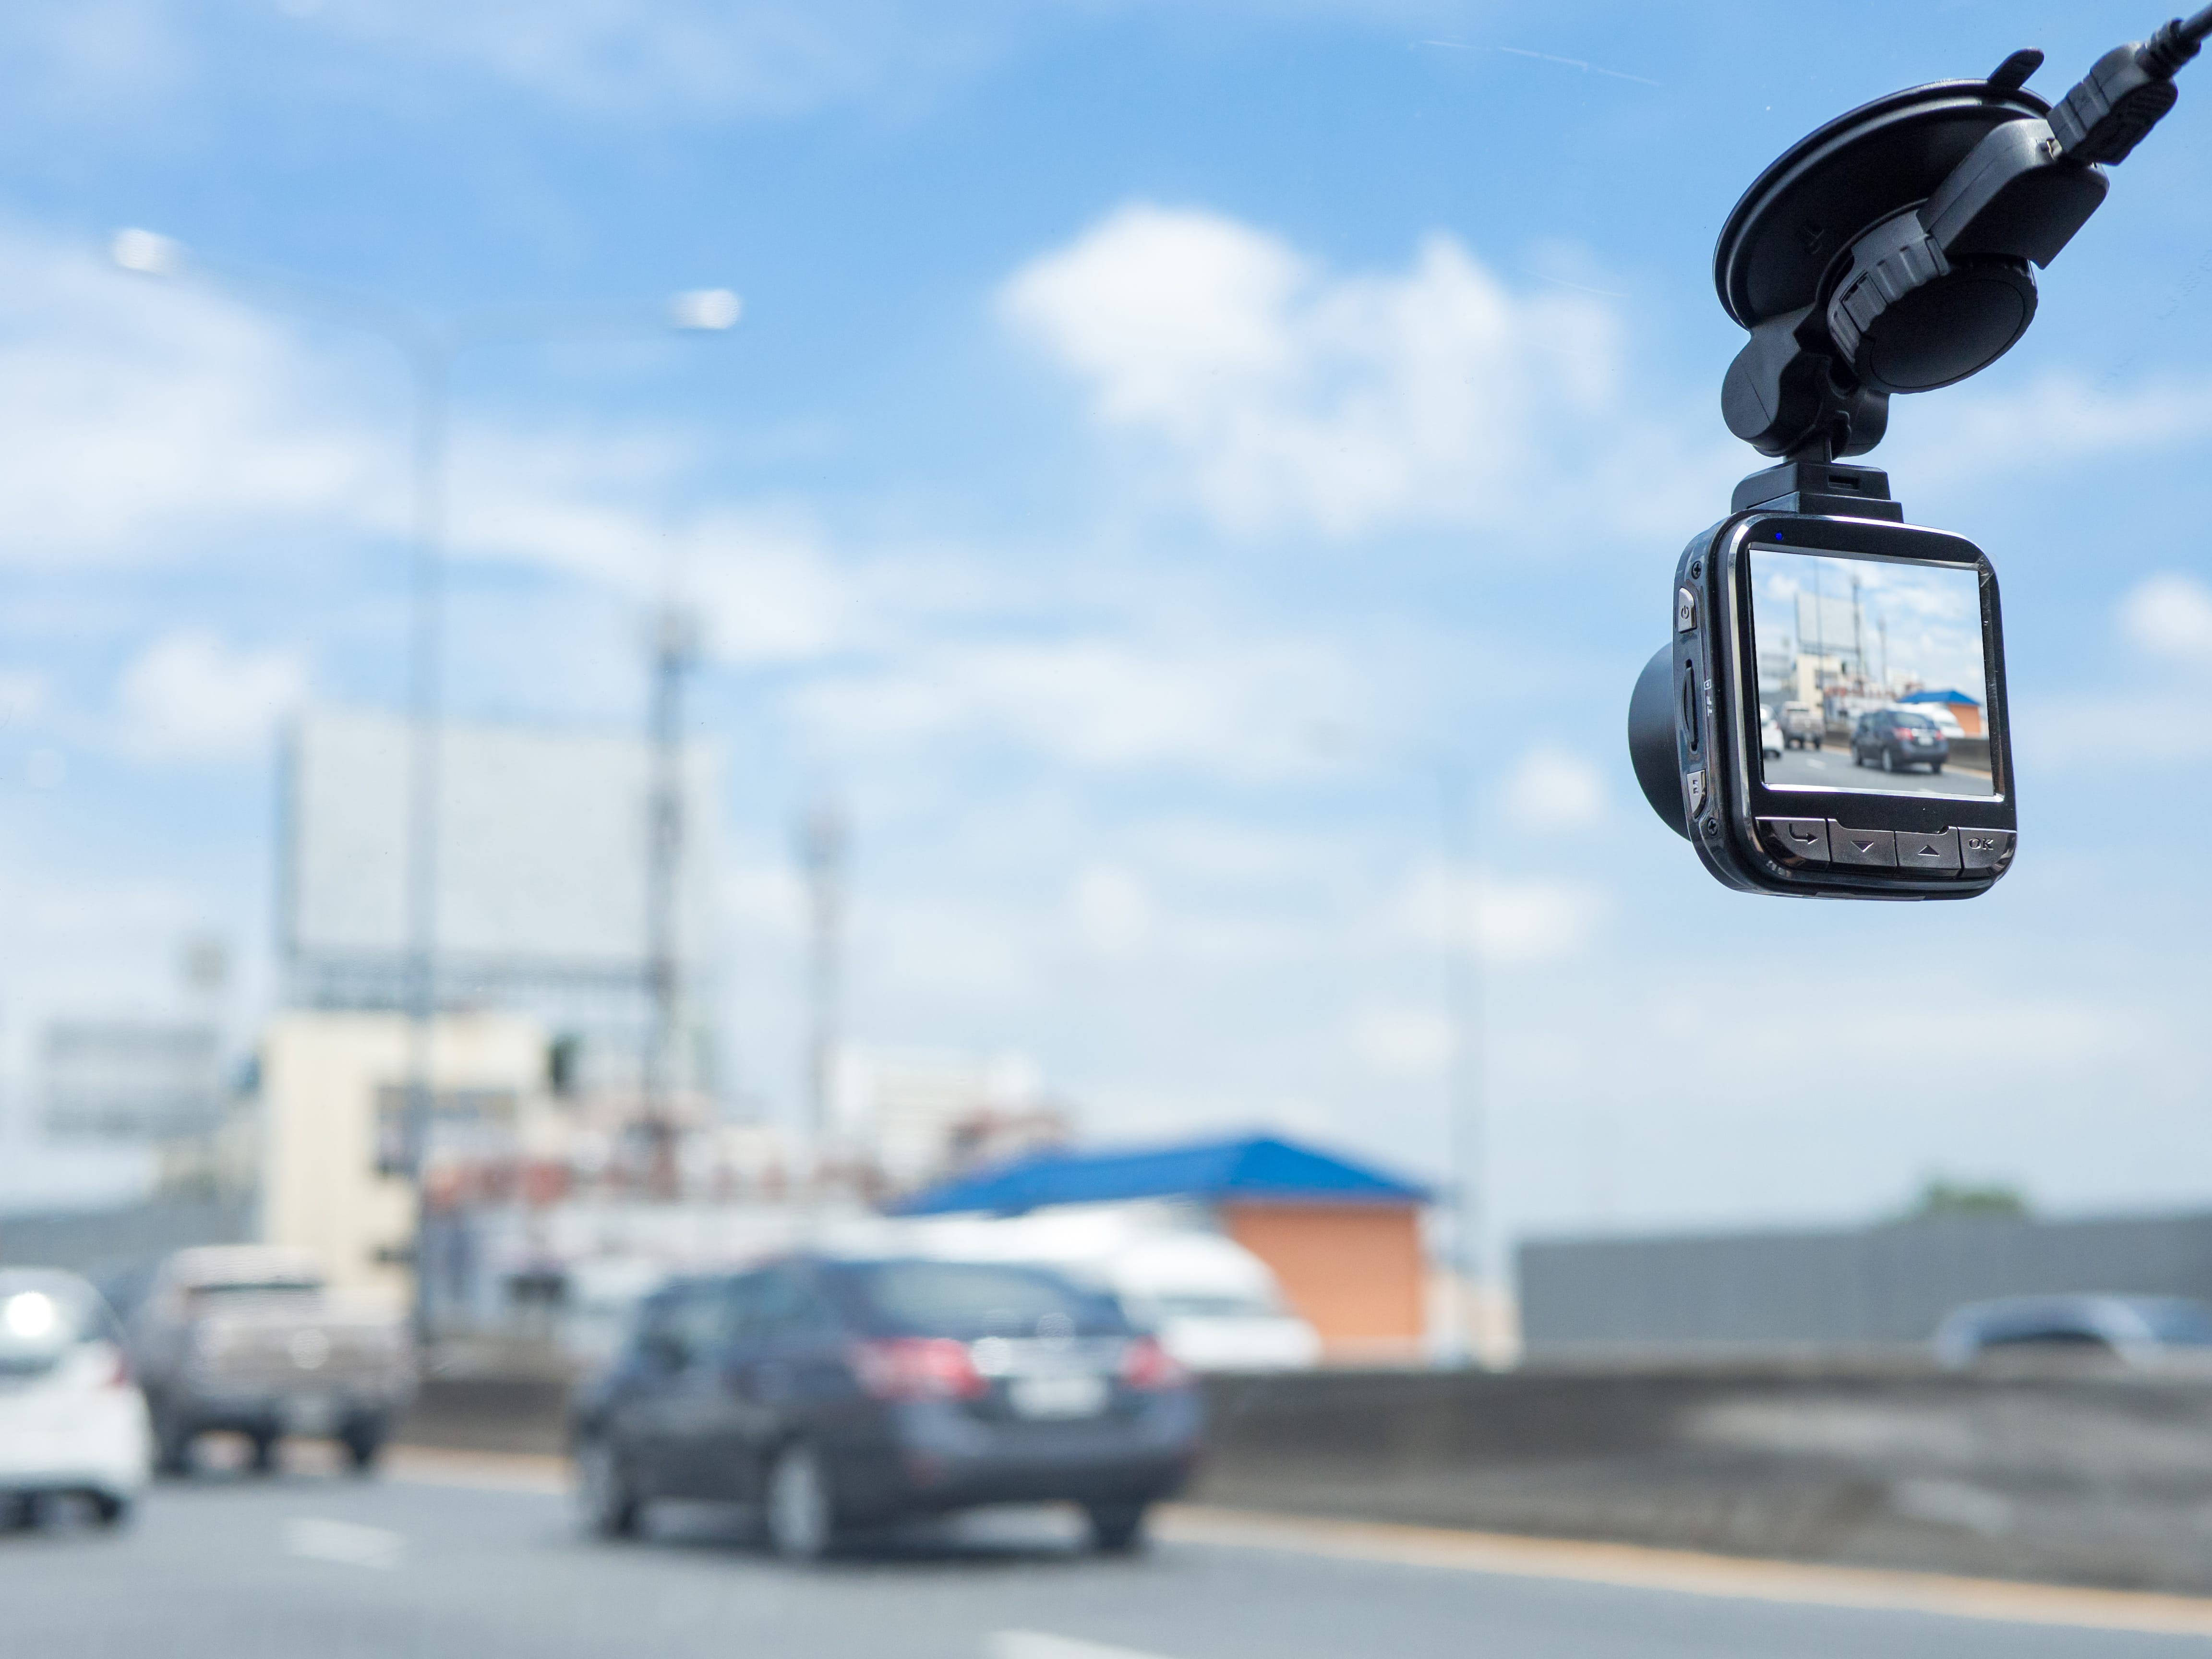 A dash cam recording the road in front.